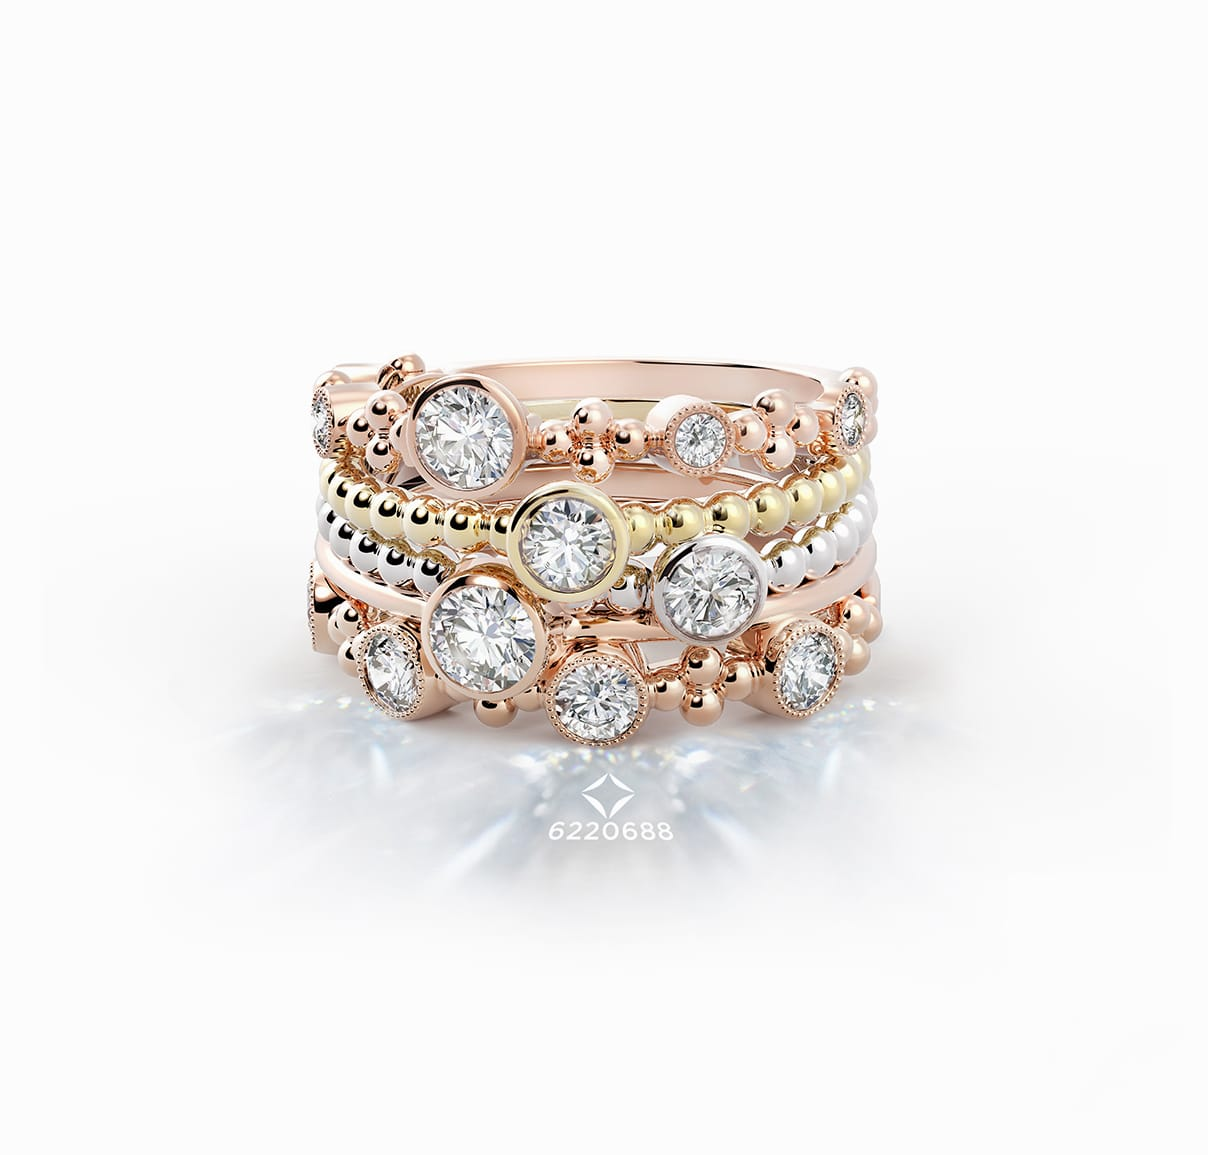 faee1b1ef The Forevermark Tribute™ Collection | Diamond Jewelry | Forevermark